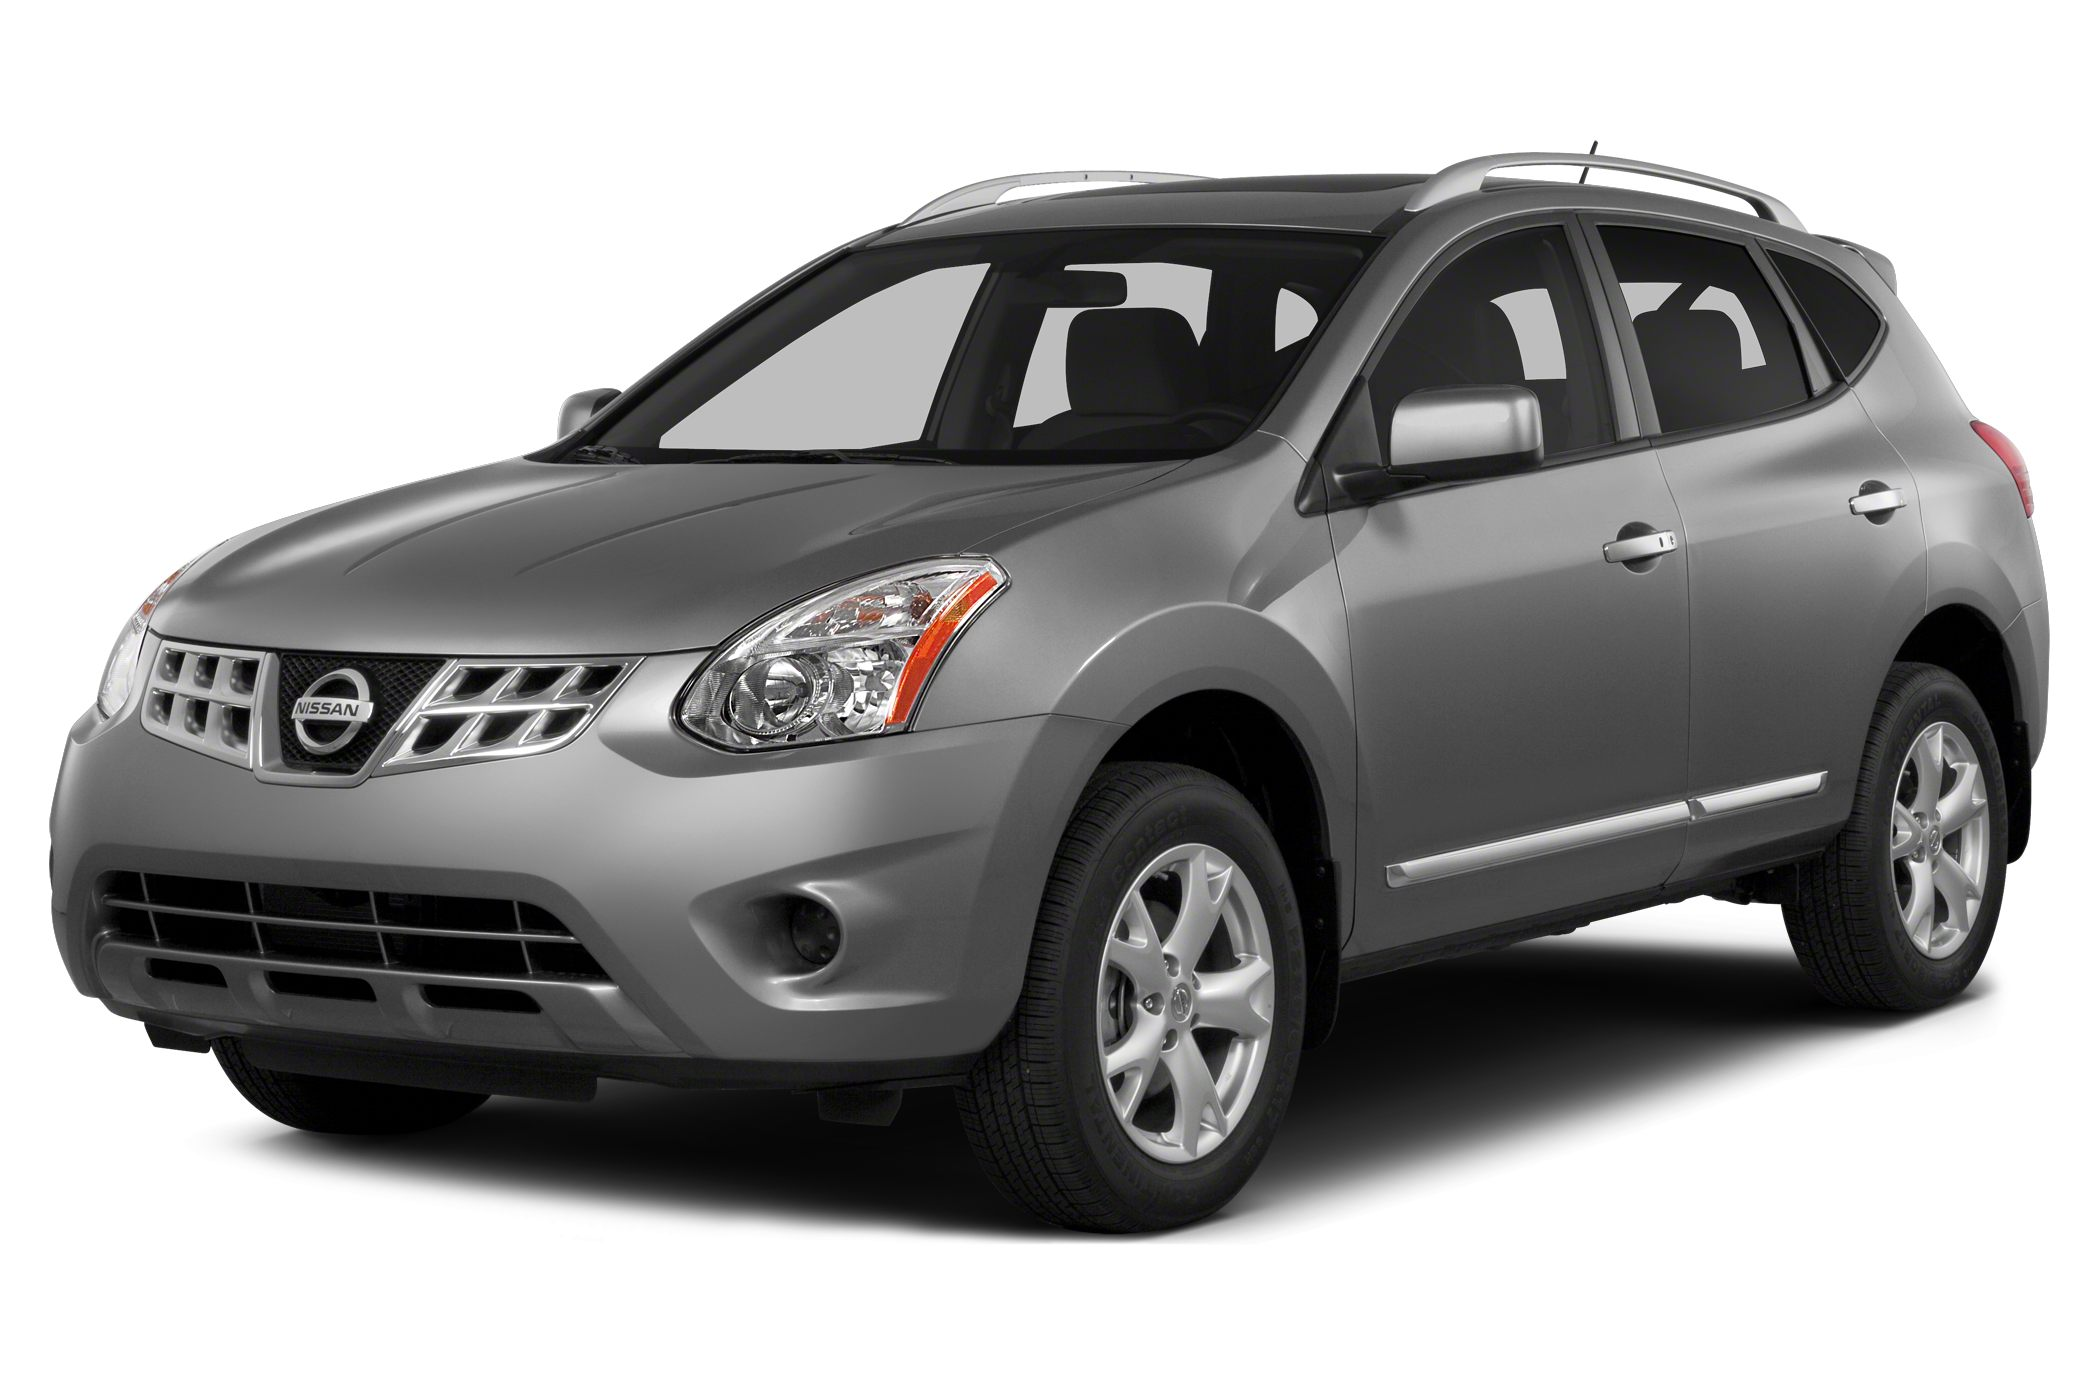 2014 Nissan Rogue Select S SUV for sale in Jefferson City for $22,990 with 7 miles